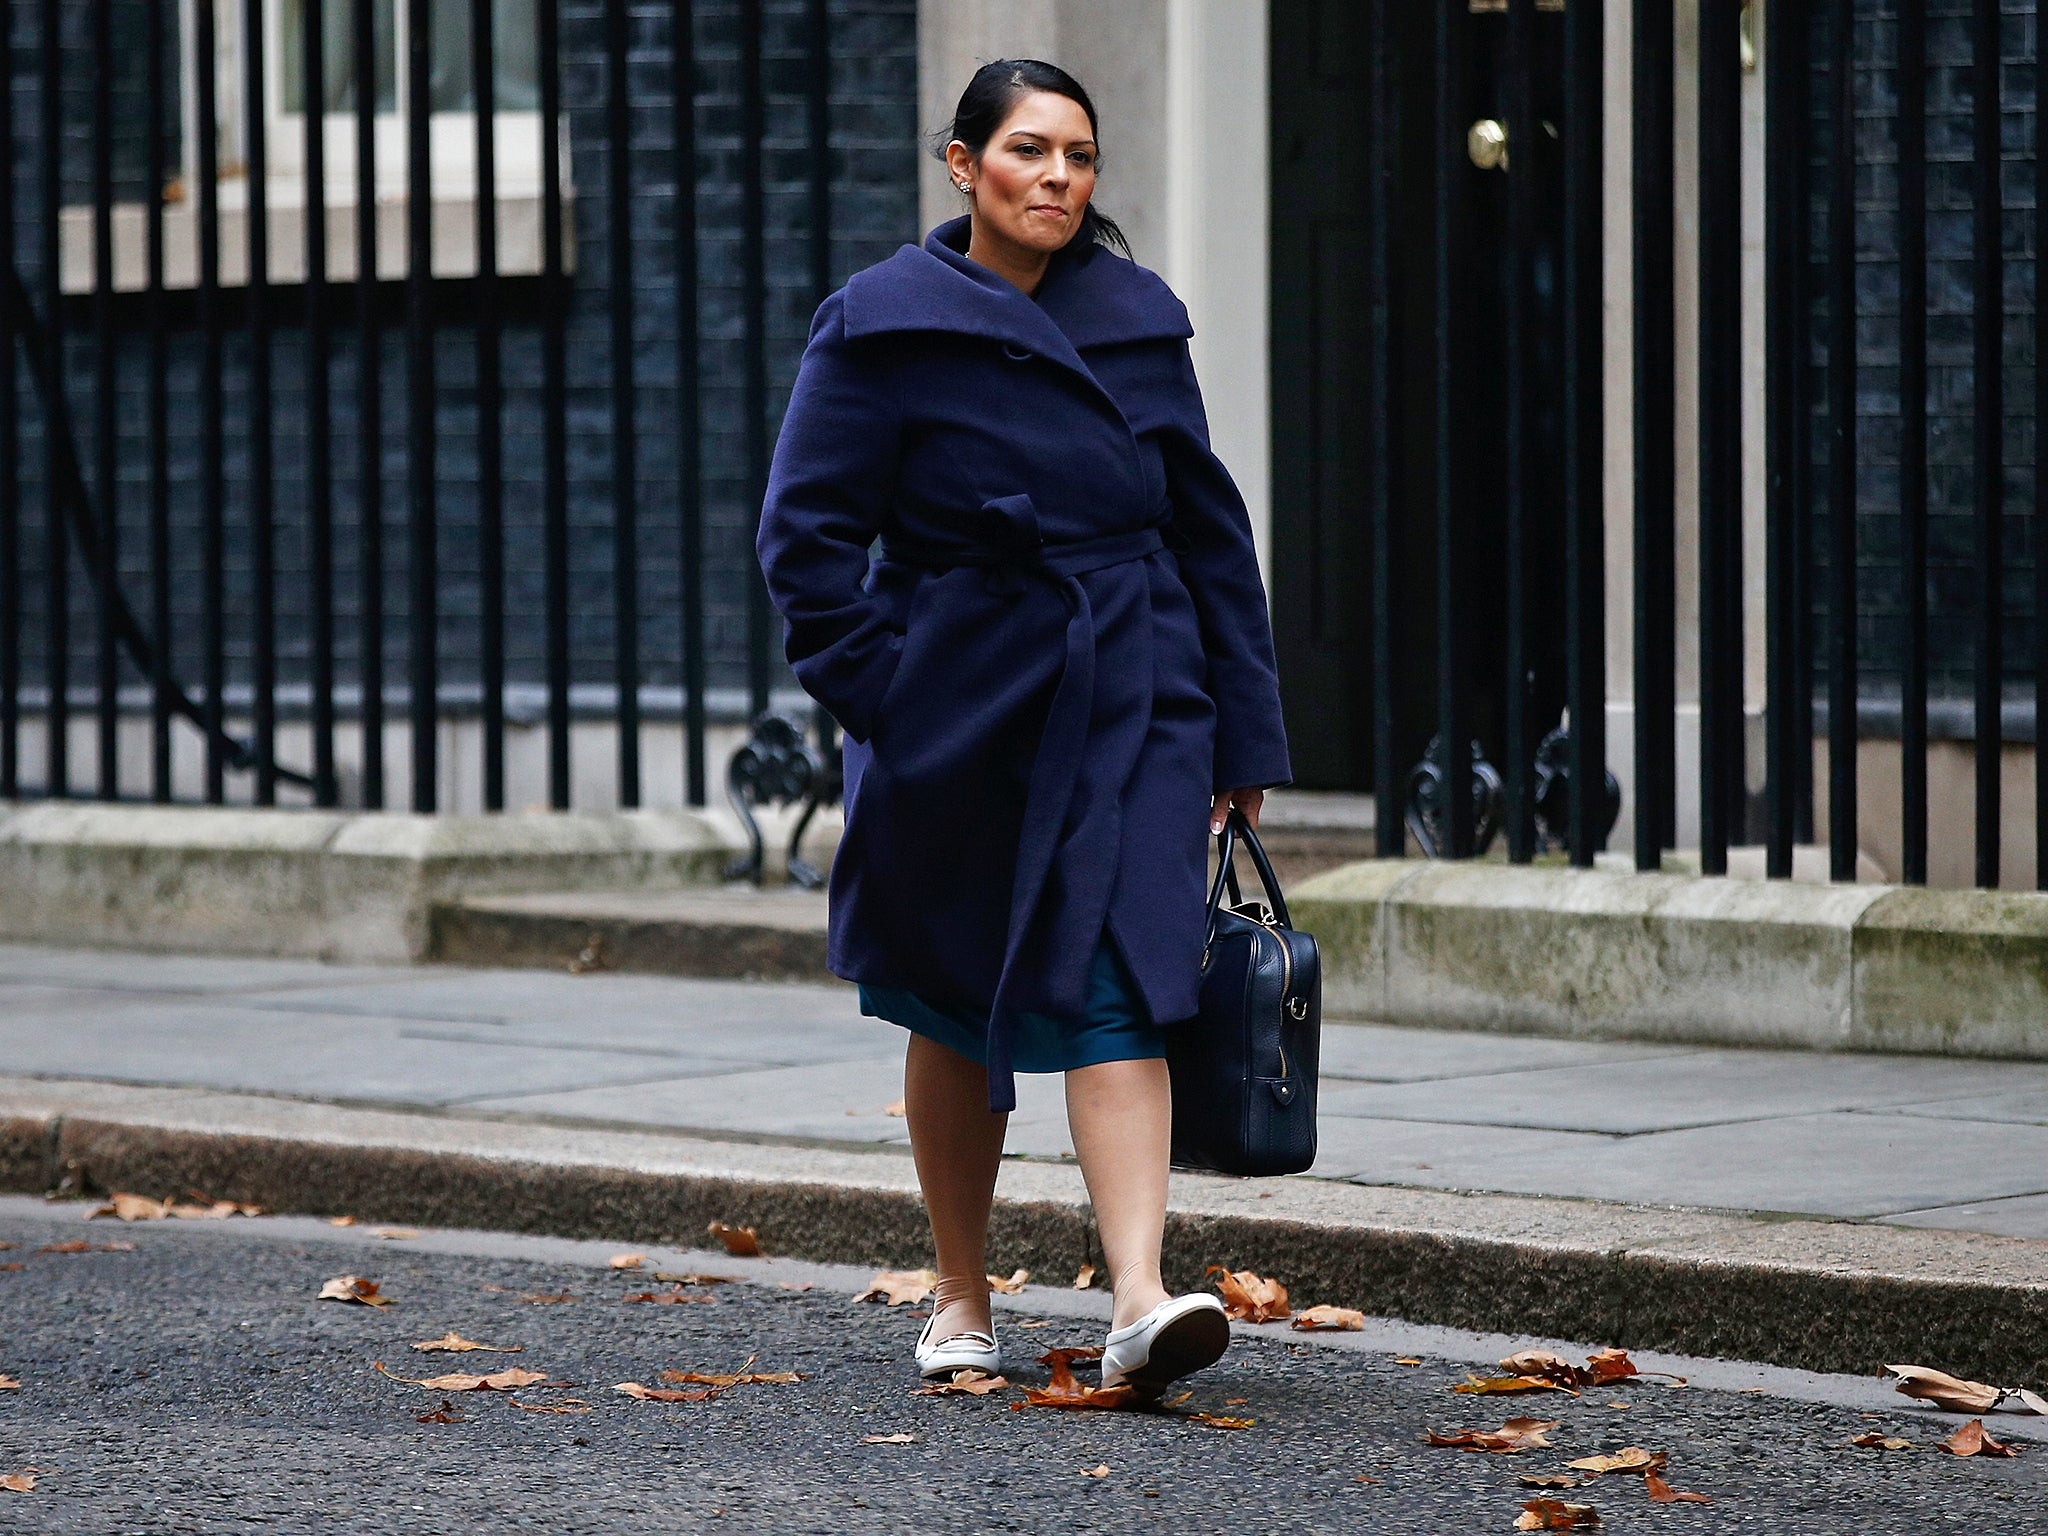 Priti Patel: A timeline of how the scandal developed from a family  'holiday' to a near-certain sacking | The Independent | The Independent